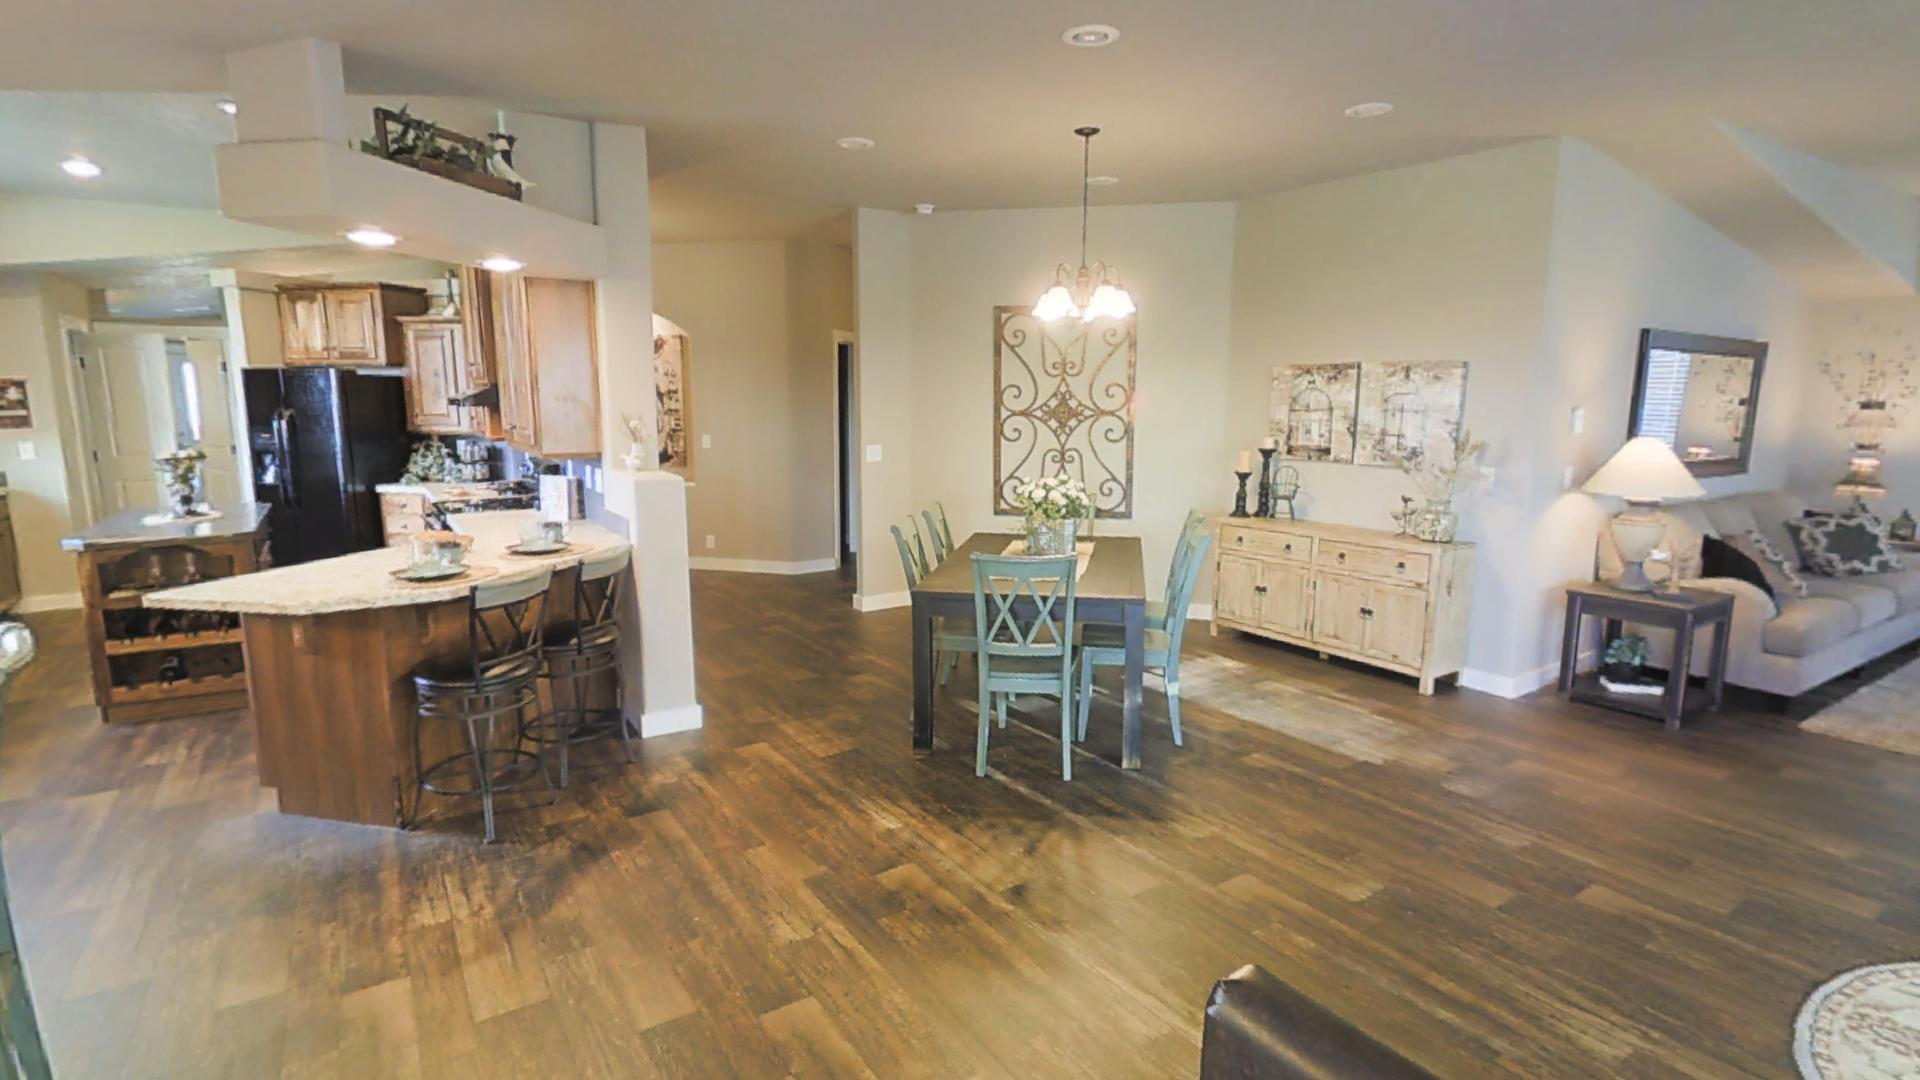 Gillespie homes in kennewick wa manufactured home dealer for Flooring kennewick